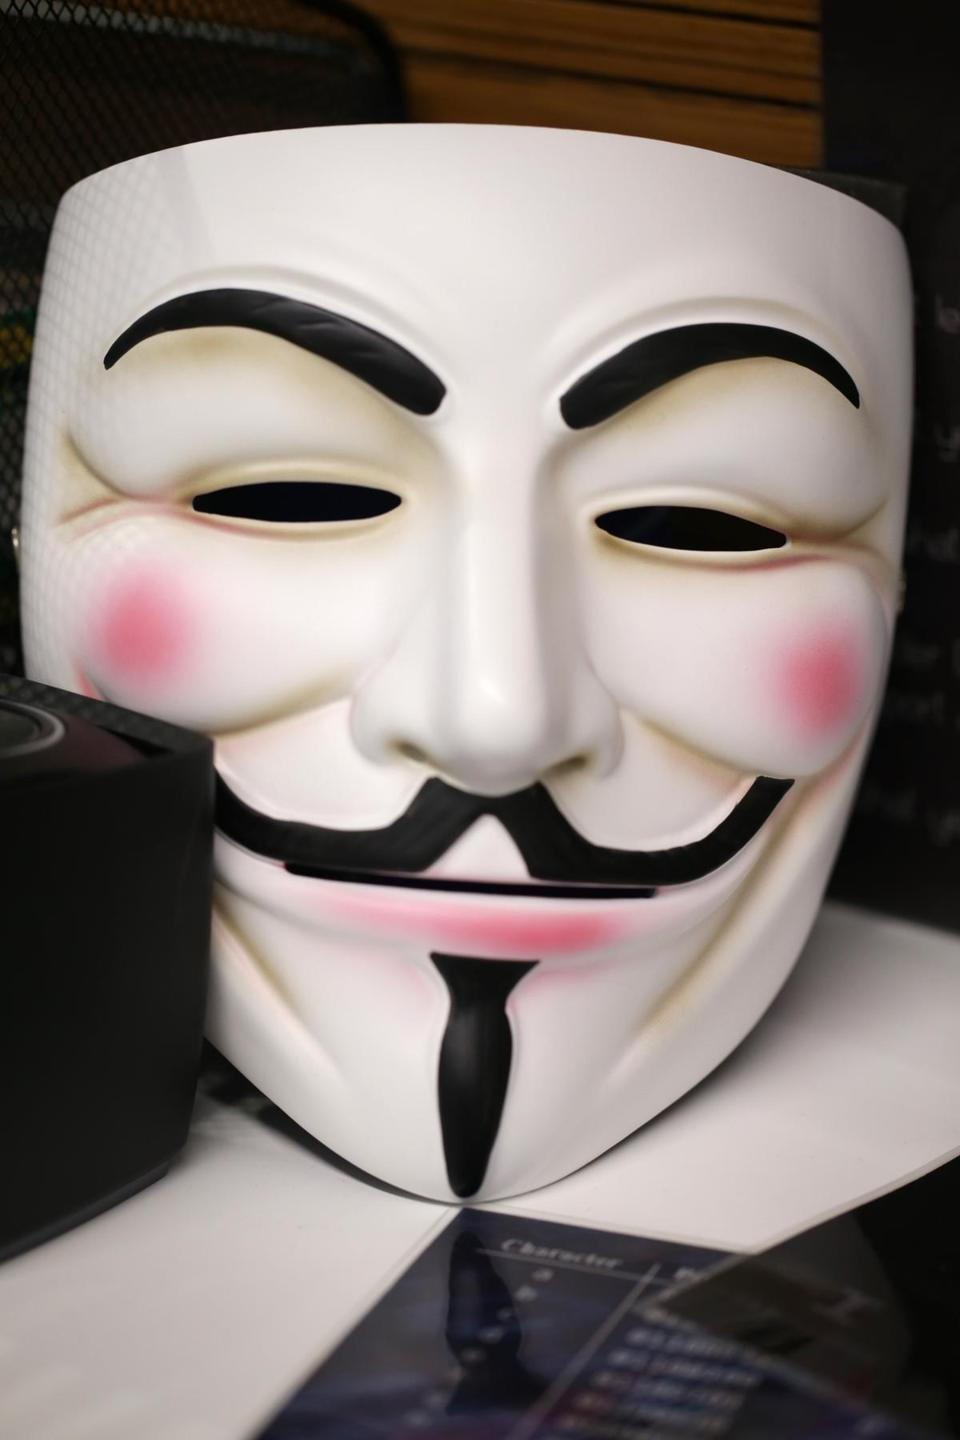 The Guy Fawkes mask is an well-known marker of hacker culture. Ritter uses this one in acting out scenarios for clients.